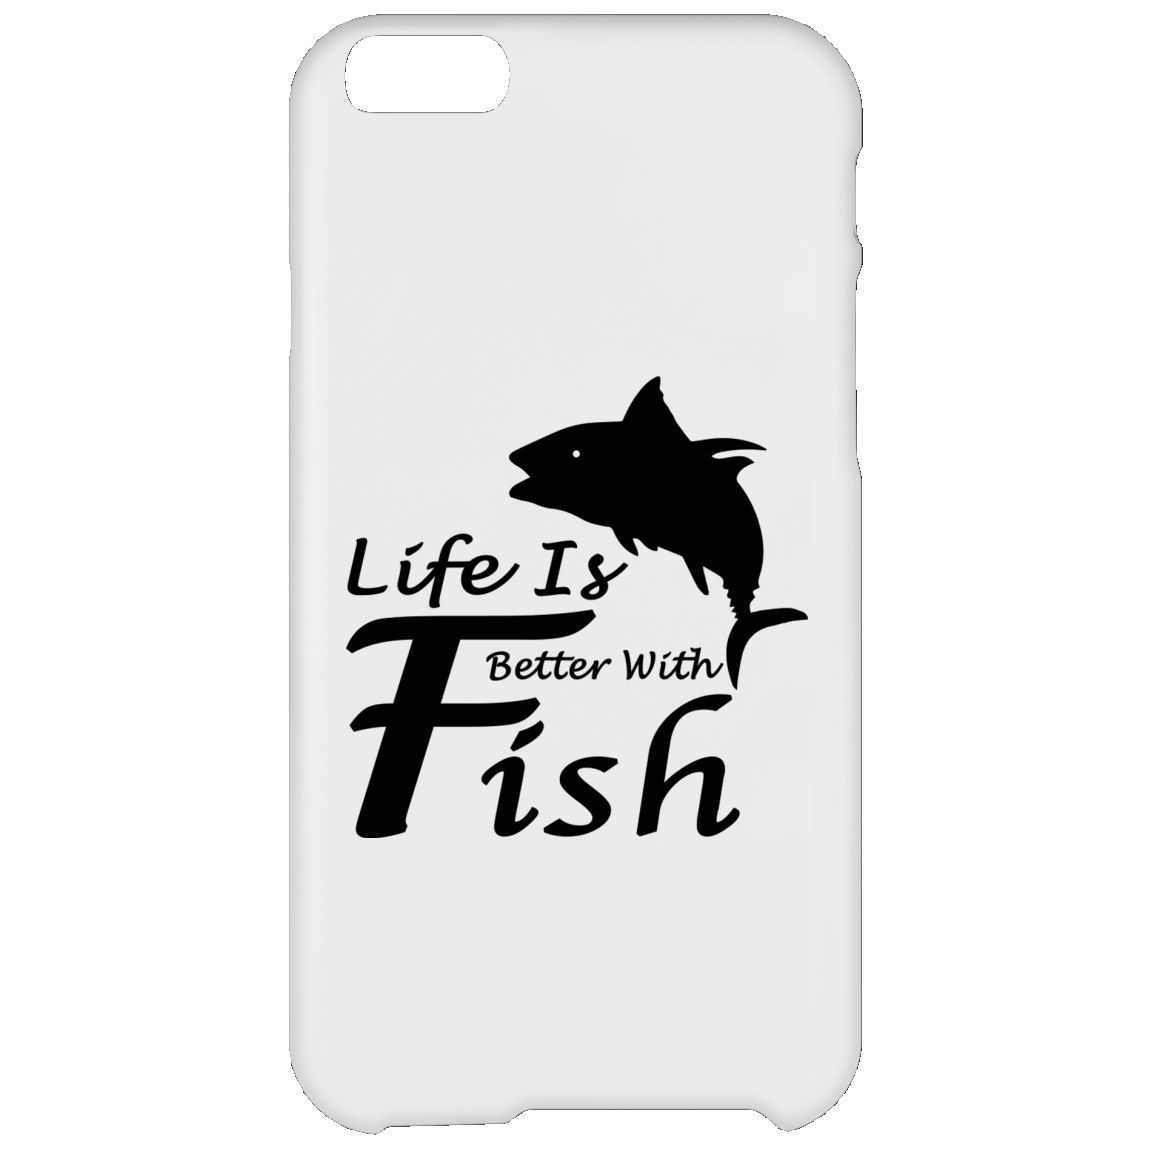 Life Is Better With A Fish iPhone 6 Cases